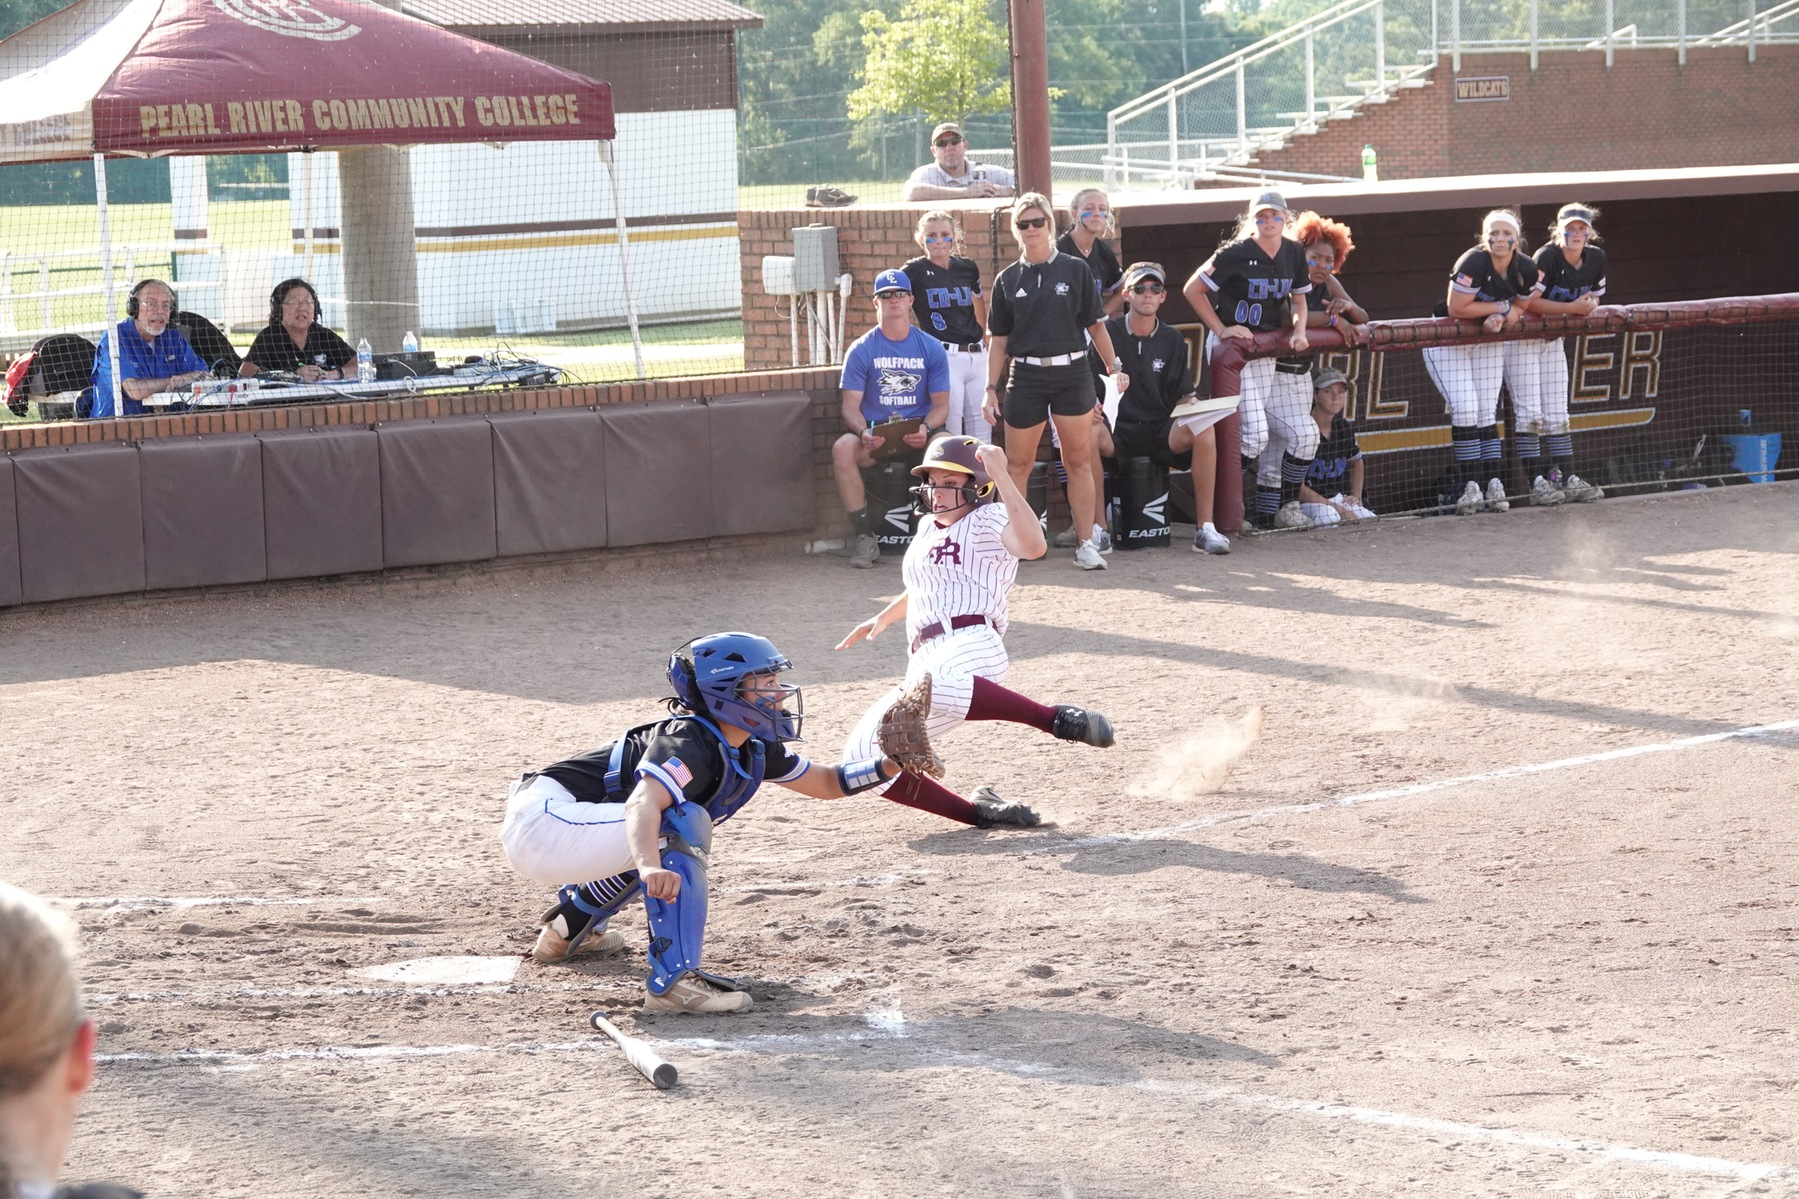 Copiah-Lincoln defeated Pearl River 9-3 in the first elimination game of the Region XXIII Tournament, hosted at PRCC's Lady Wildcat Stadium in Poplarville, Miss. (KRISTI HARRIS/PRCC ATHLETICS)